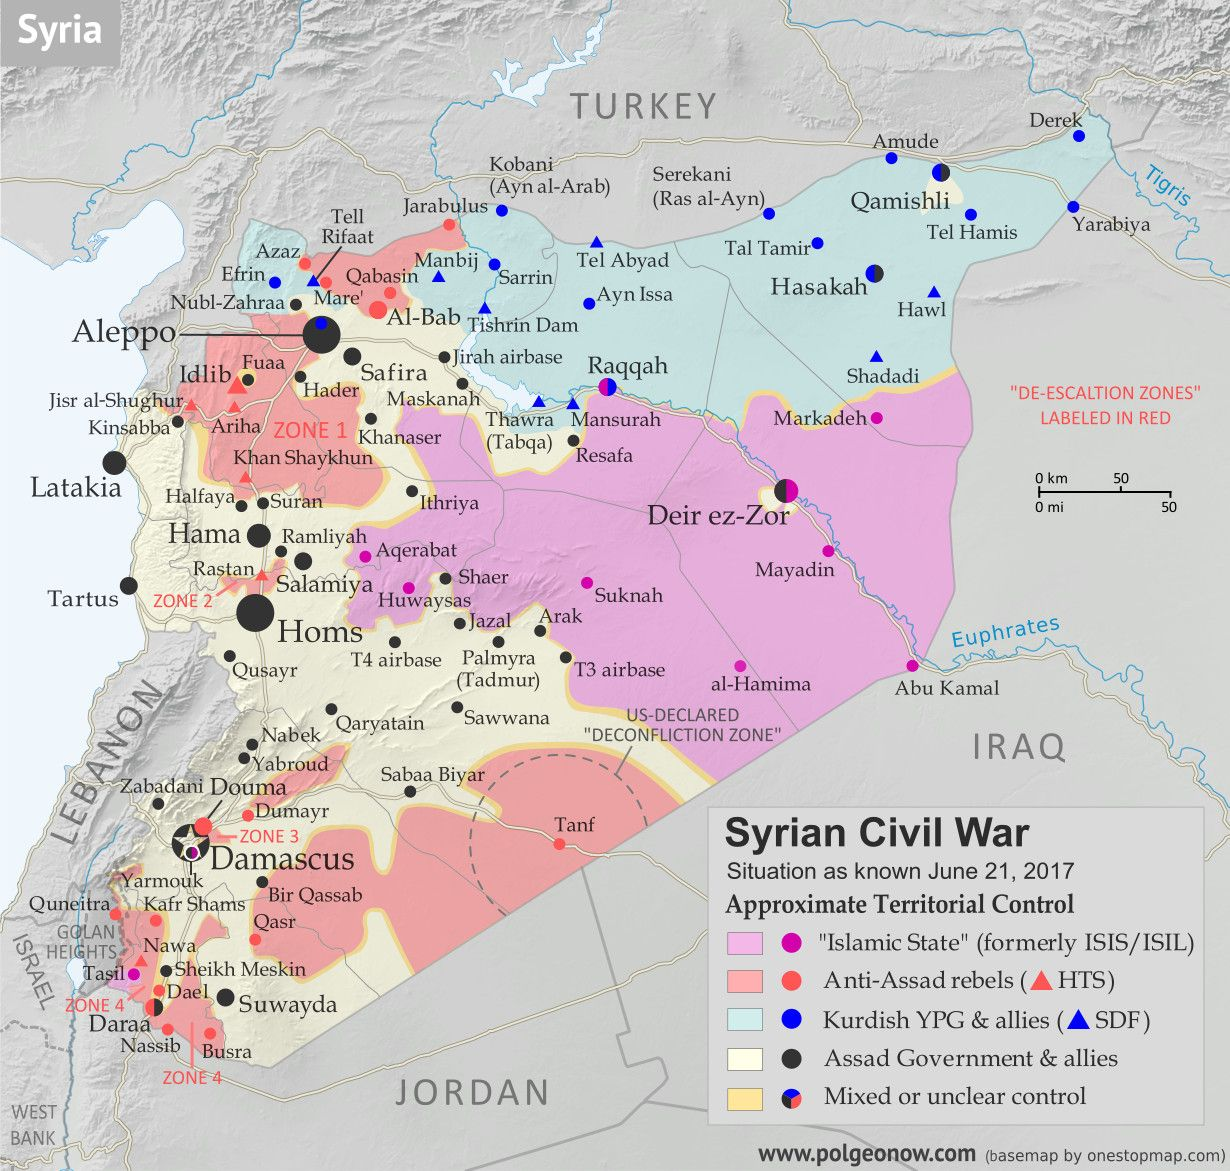 map of syrian civil war syria control map fighting and territorial control in syria in june 2017 free syrian army rebels kurdish ypg syrian democratic